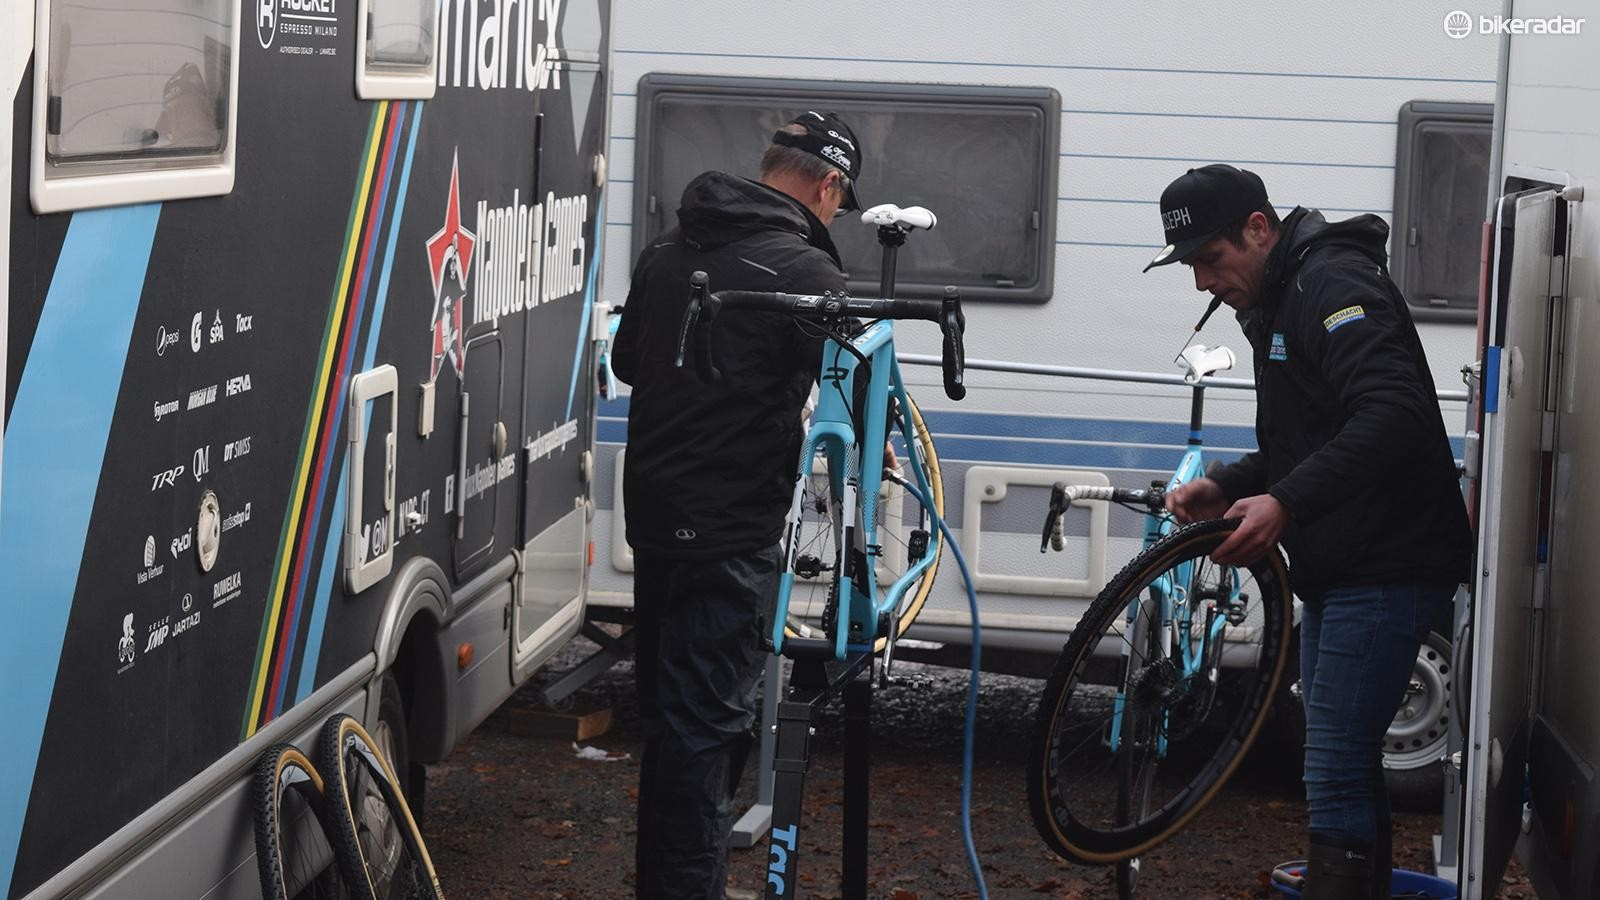 Mechanics from the Marlux-Napolean Games clean bikes after some warm up laps